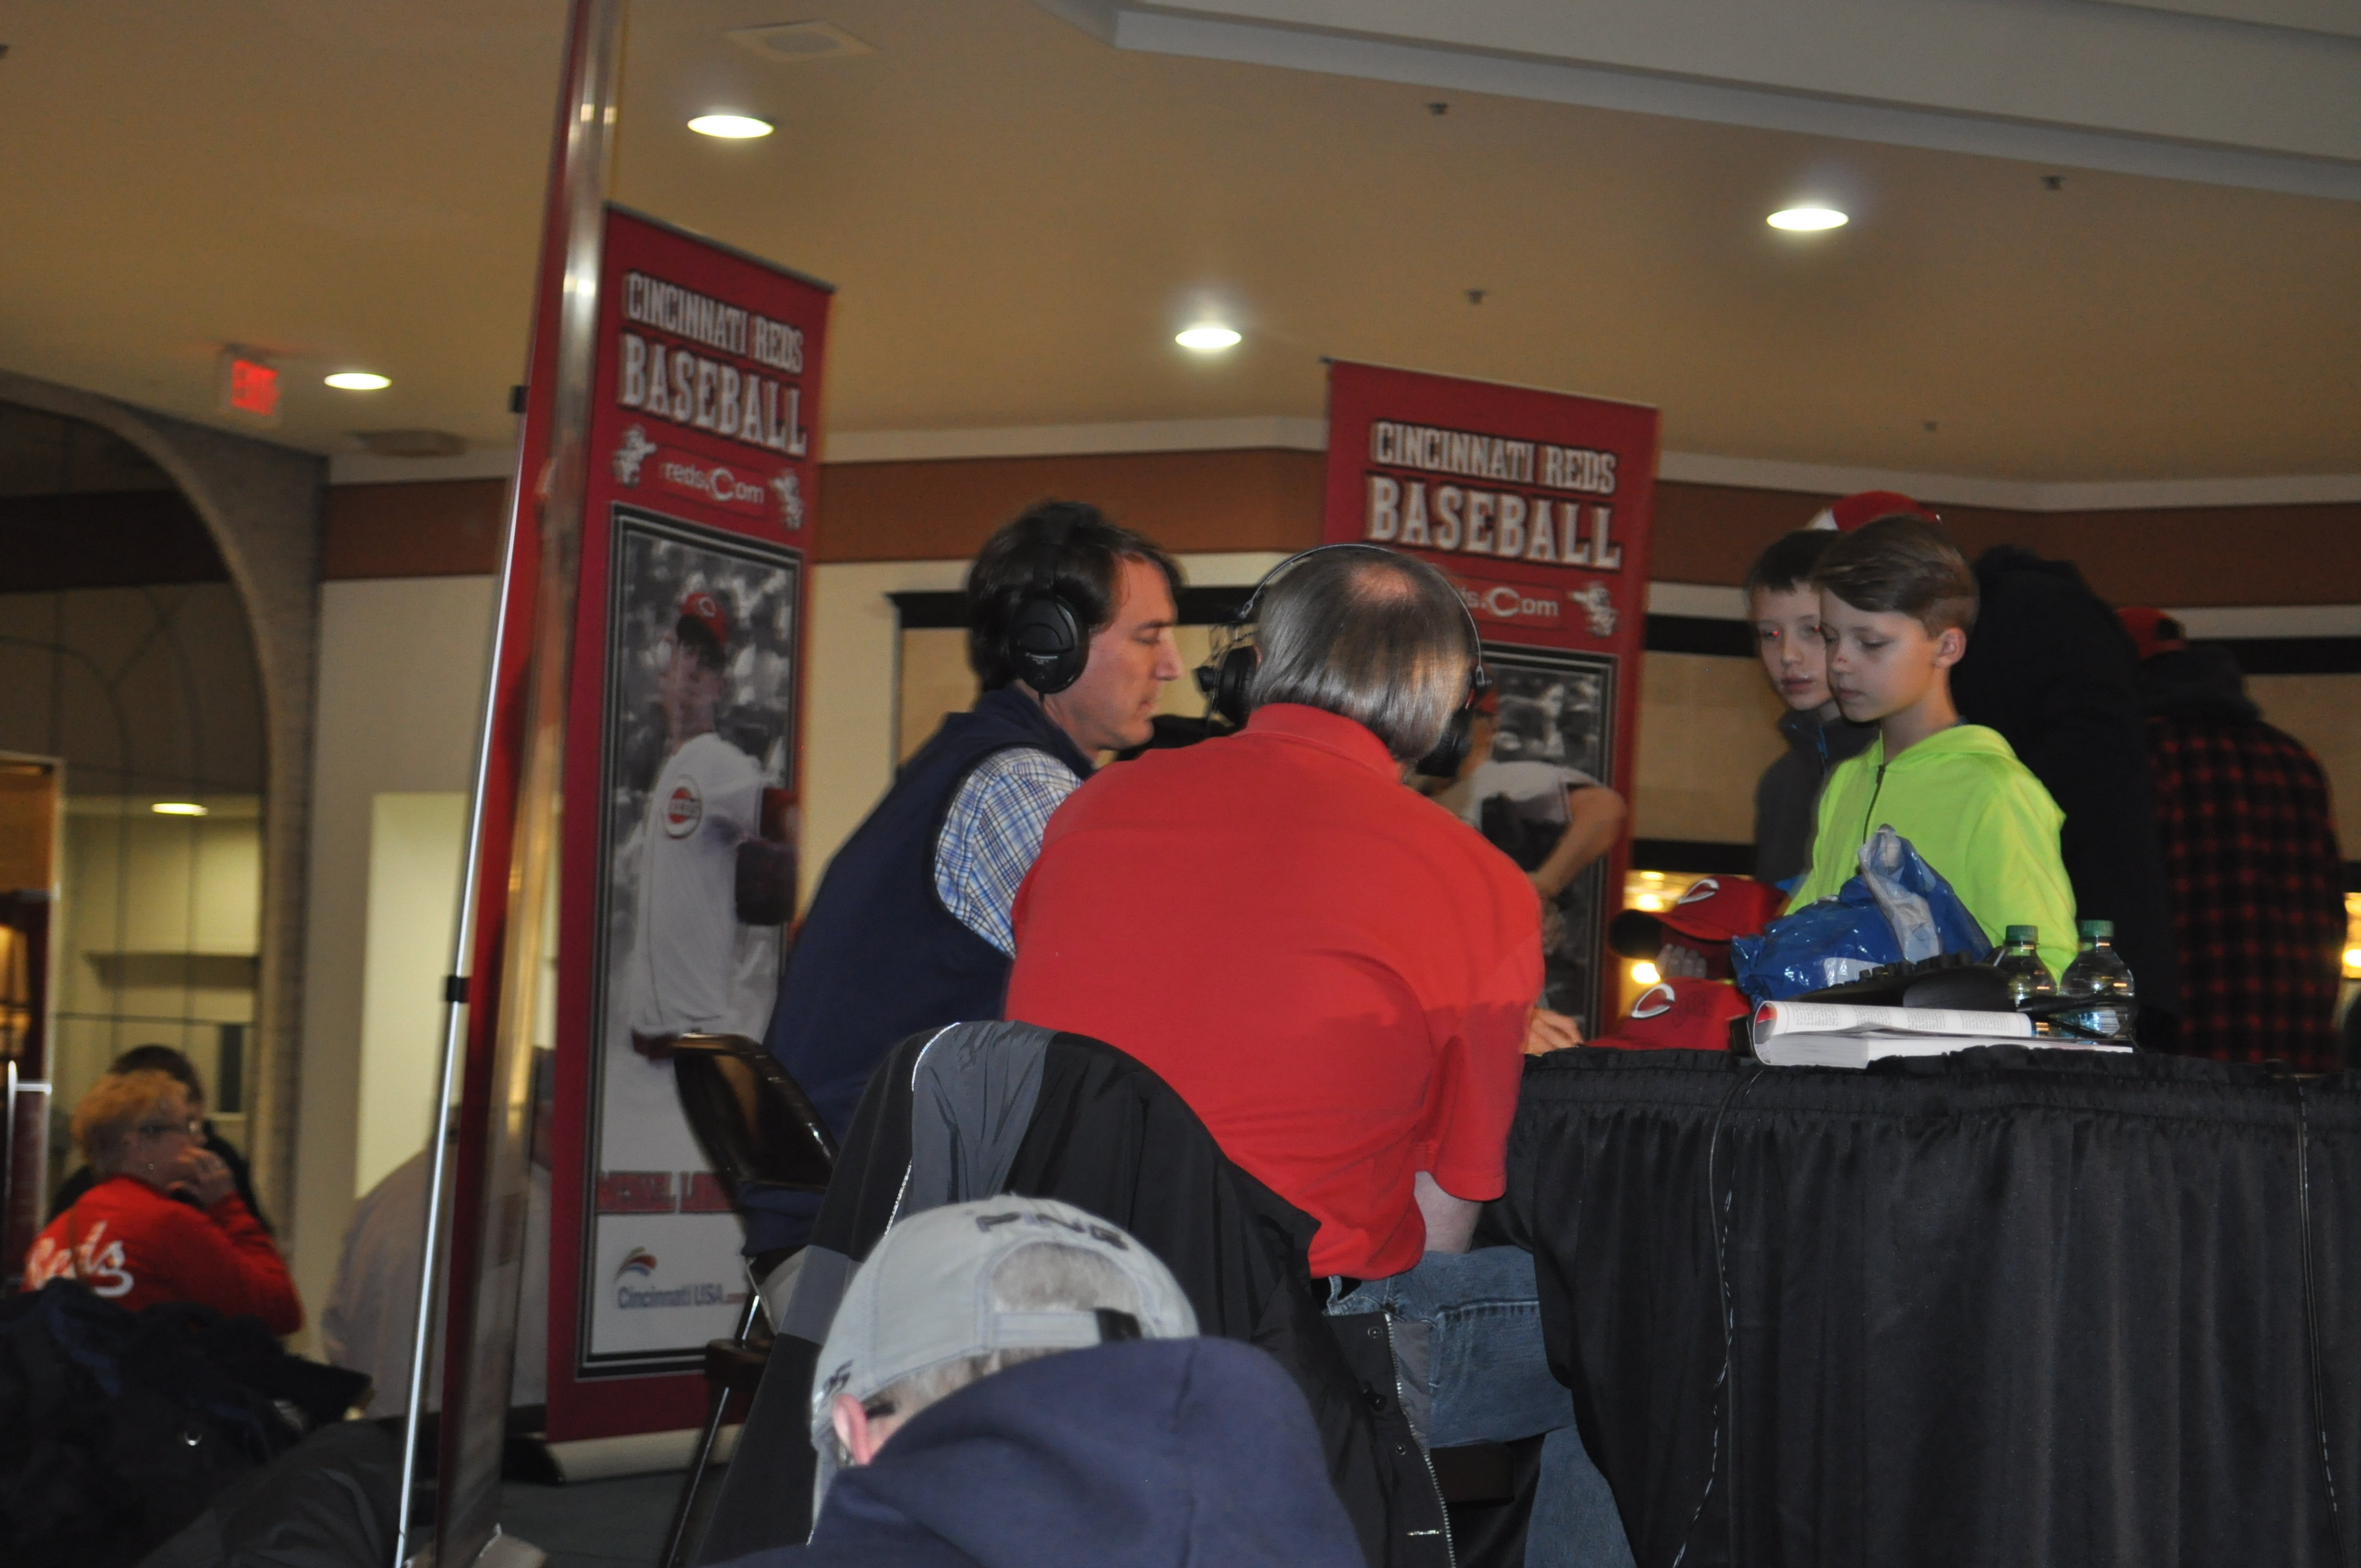 Reds GM Dick Williams signing autographs for some young fans while being interviewed by WCHS-AM Radio 580 sportscaster Jeff Jenkins.